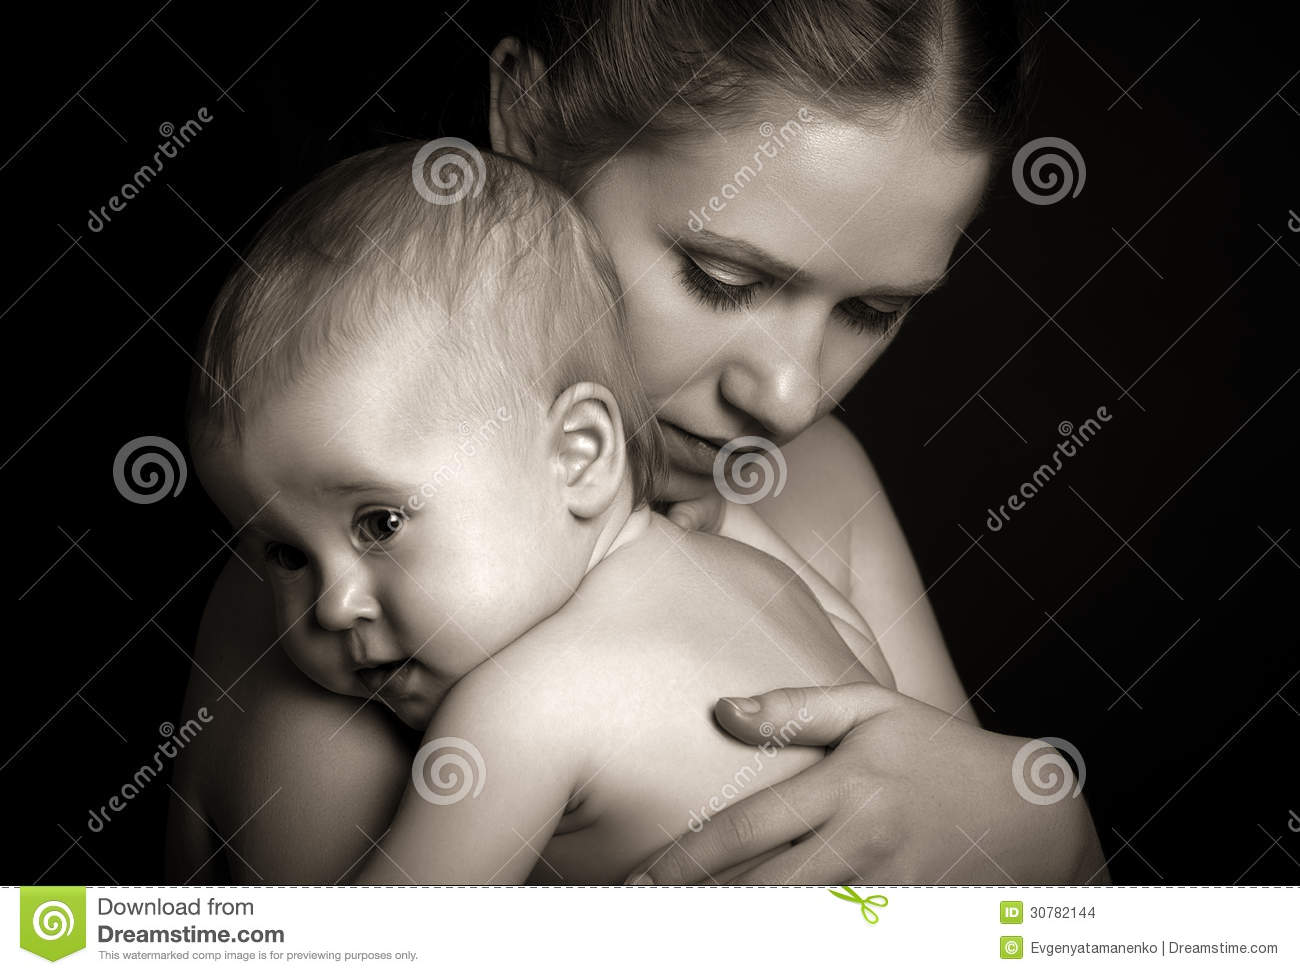 Concept for love and family. mother hugging baby tenderly in mon